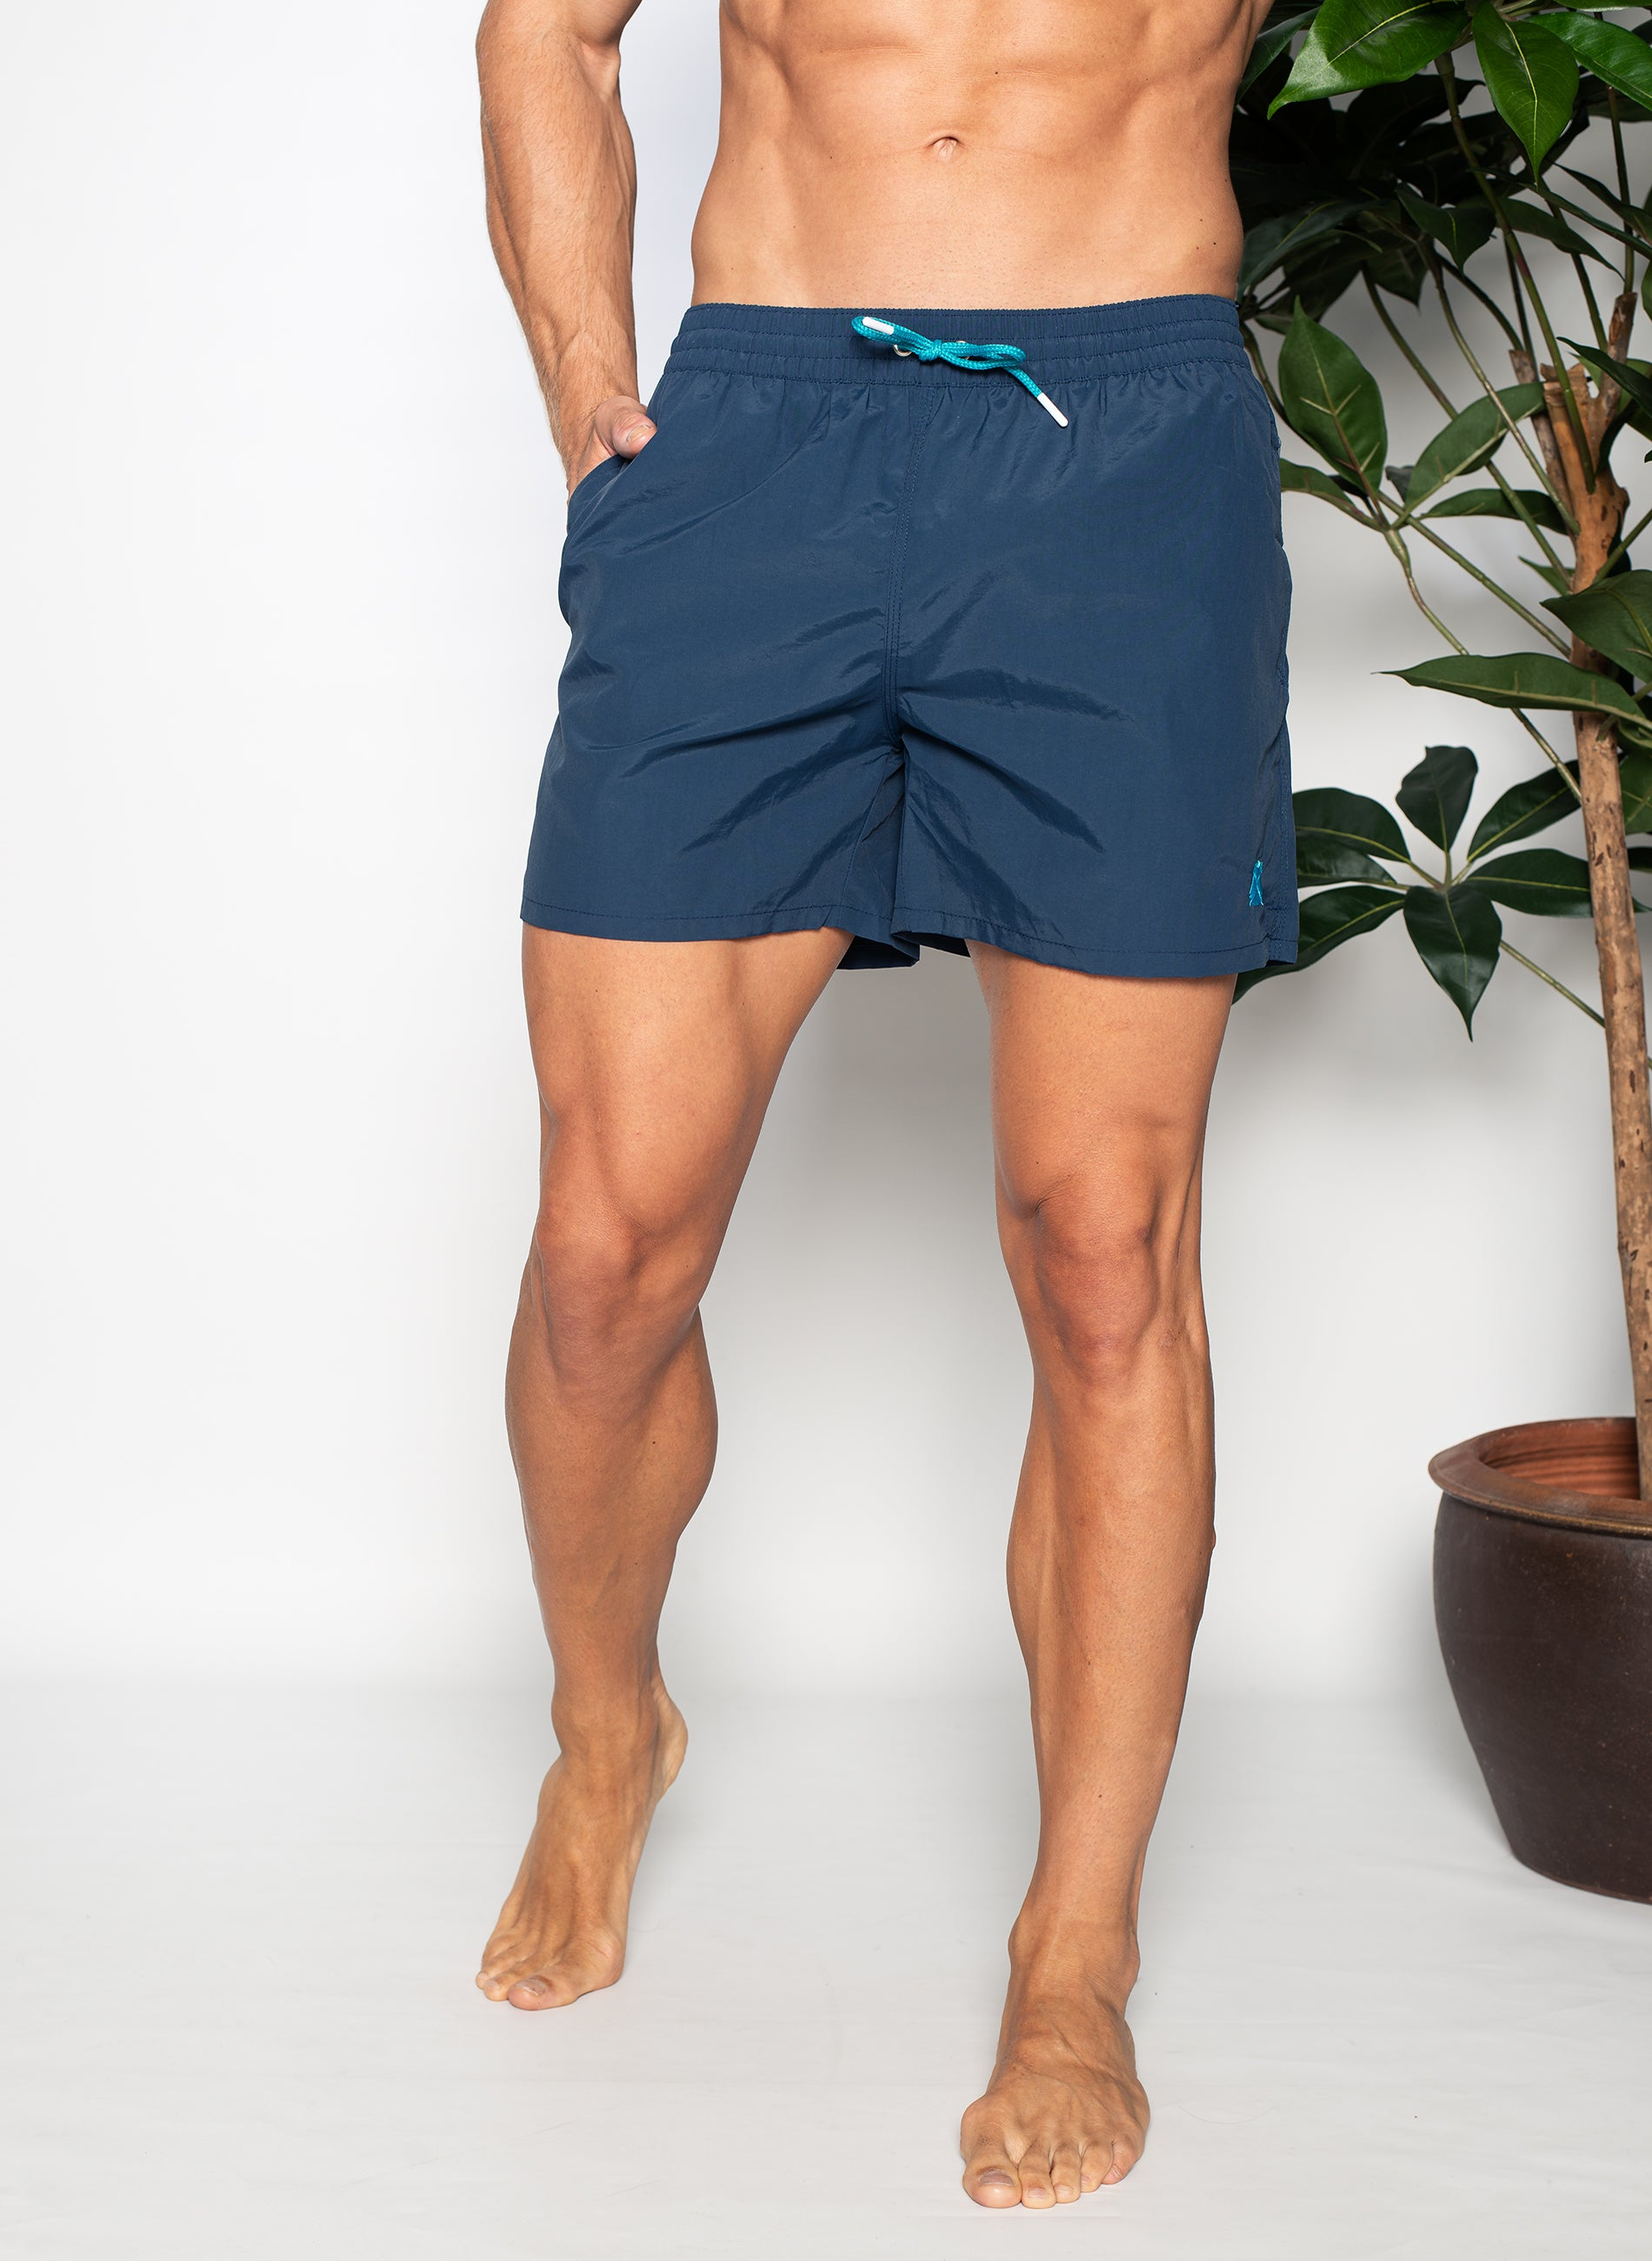 Navy Blue Swimsuit Turquoise Details